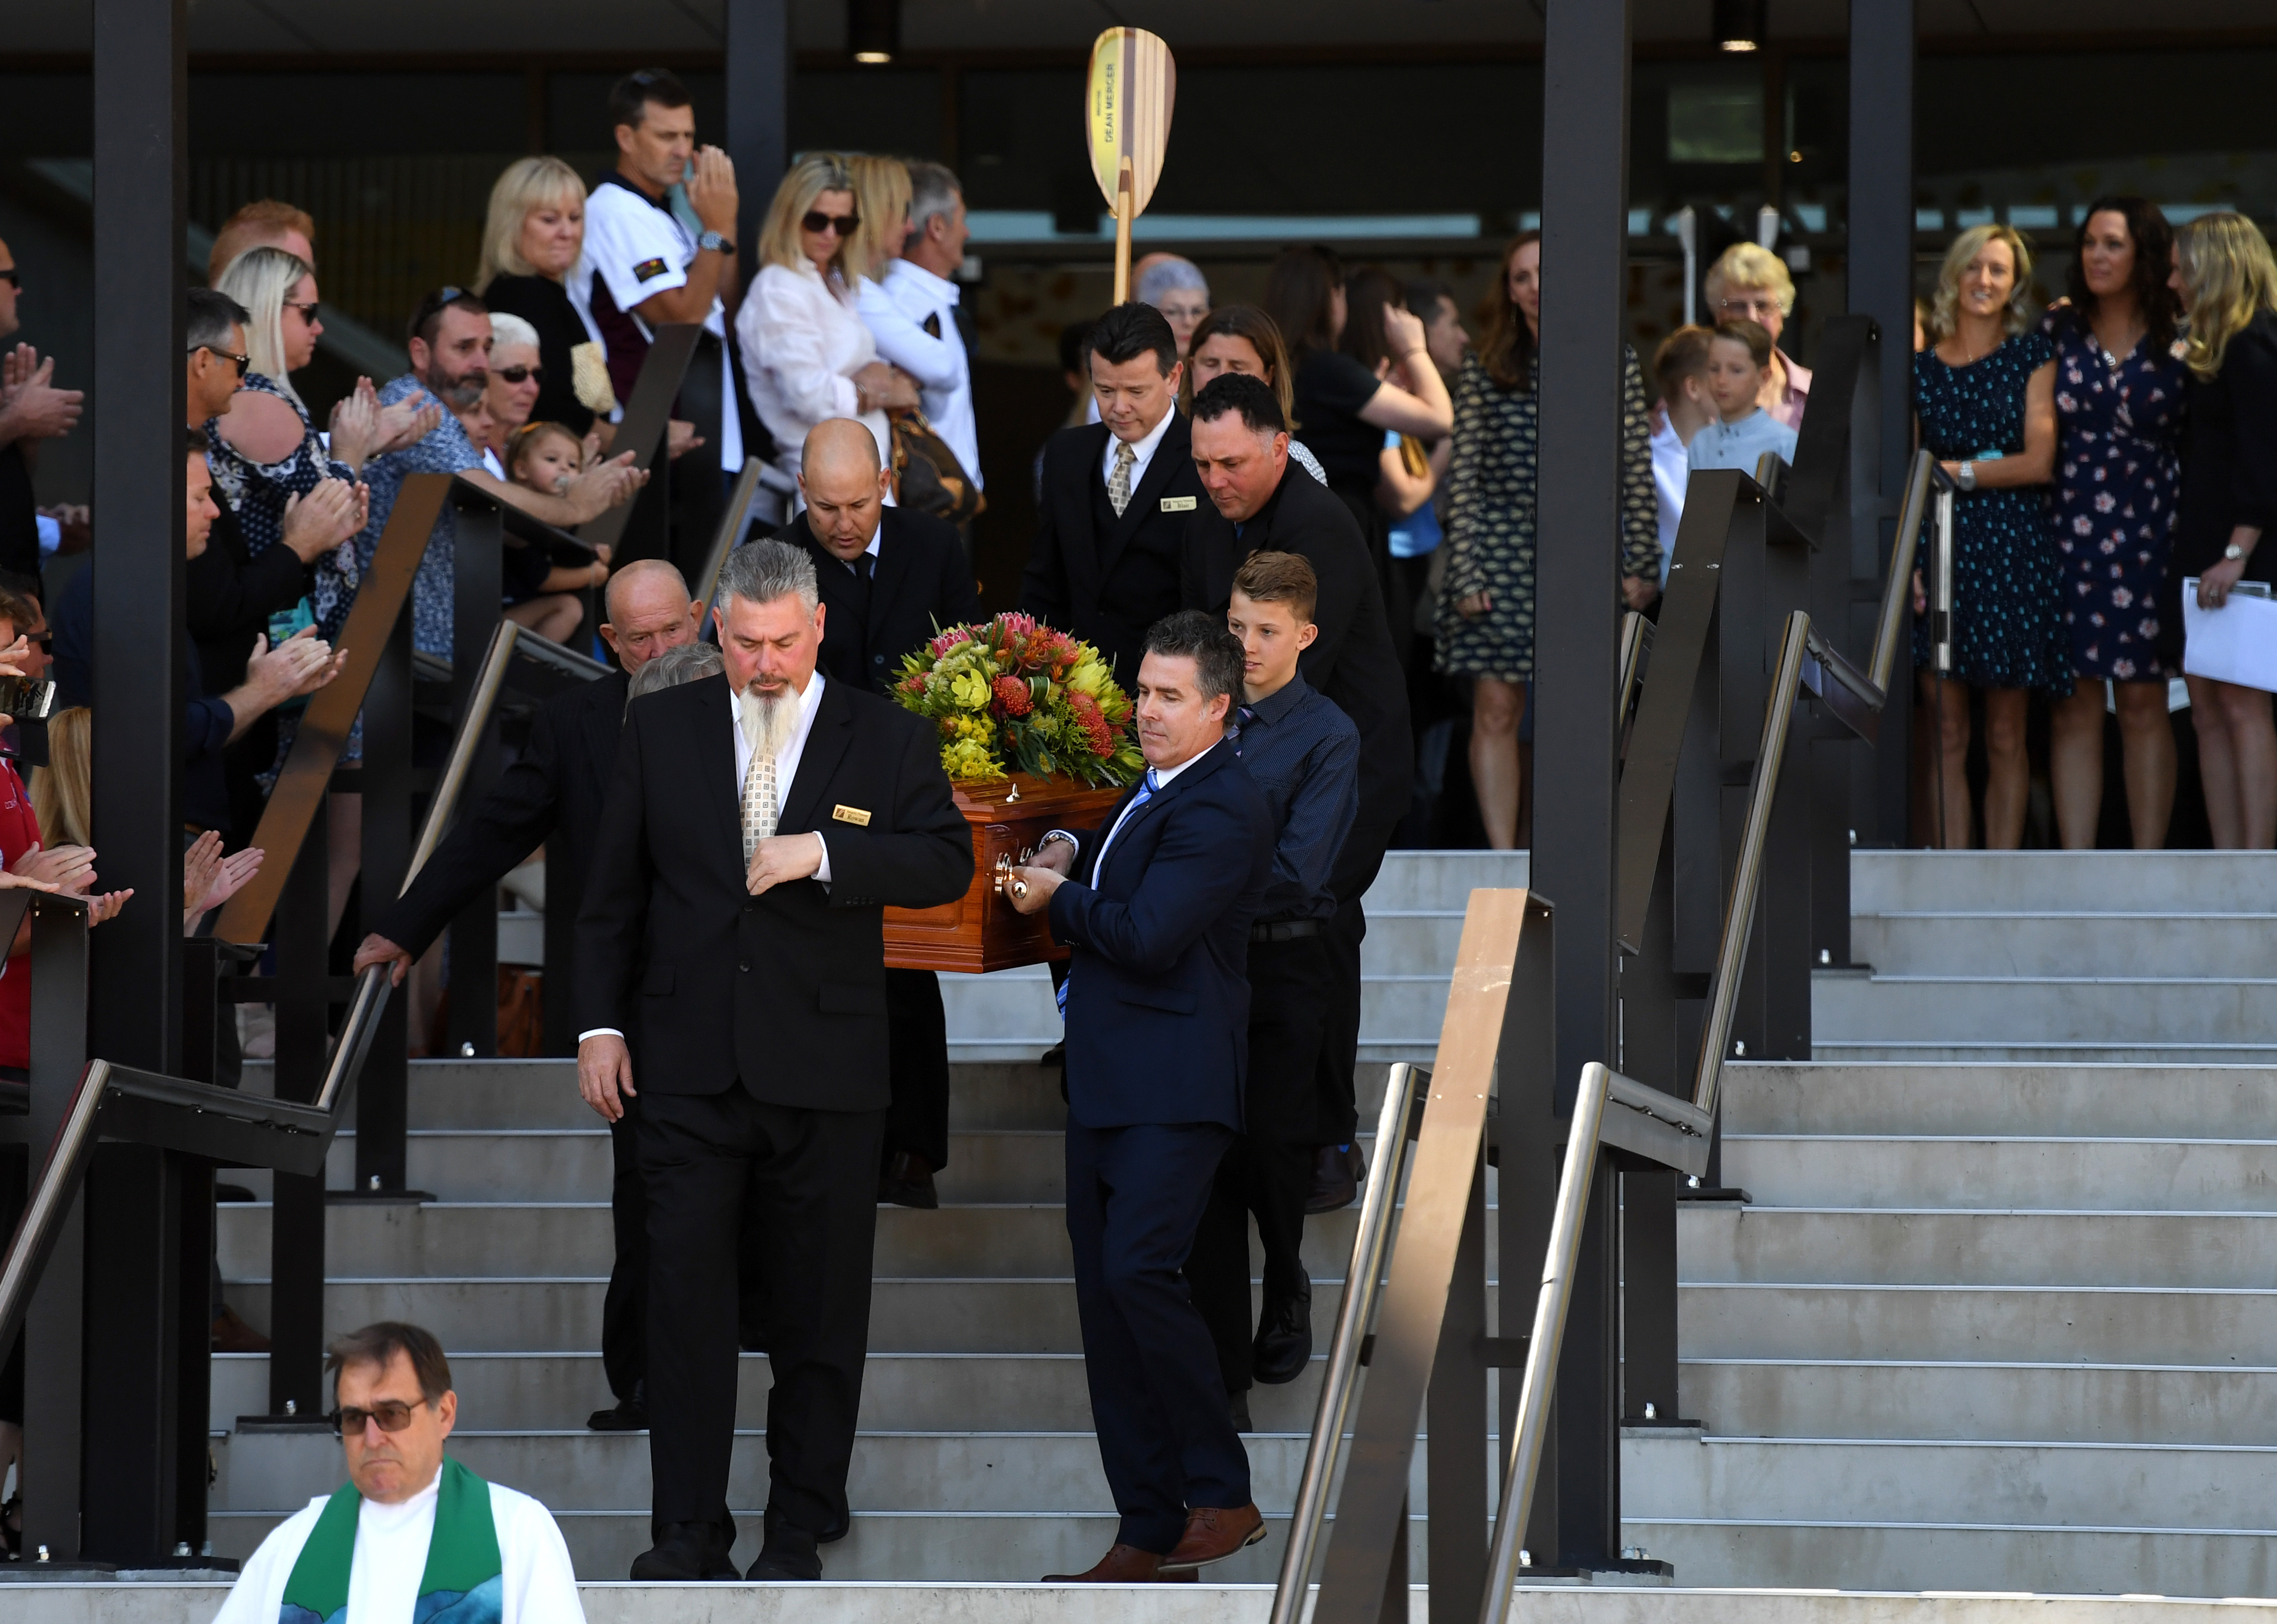 Pall-bearers, including 13-year-old Brayden, carry the coffin of his father Dean Mercer. (AAP)